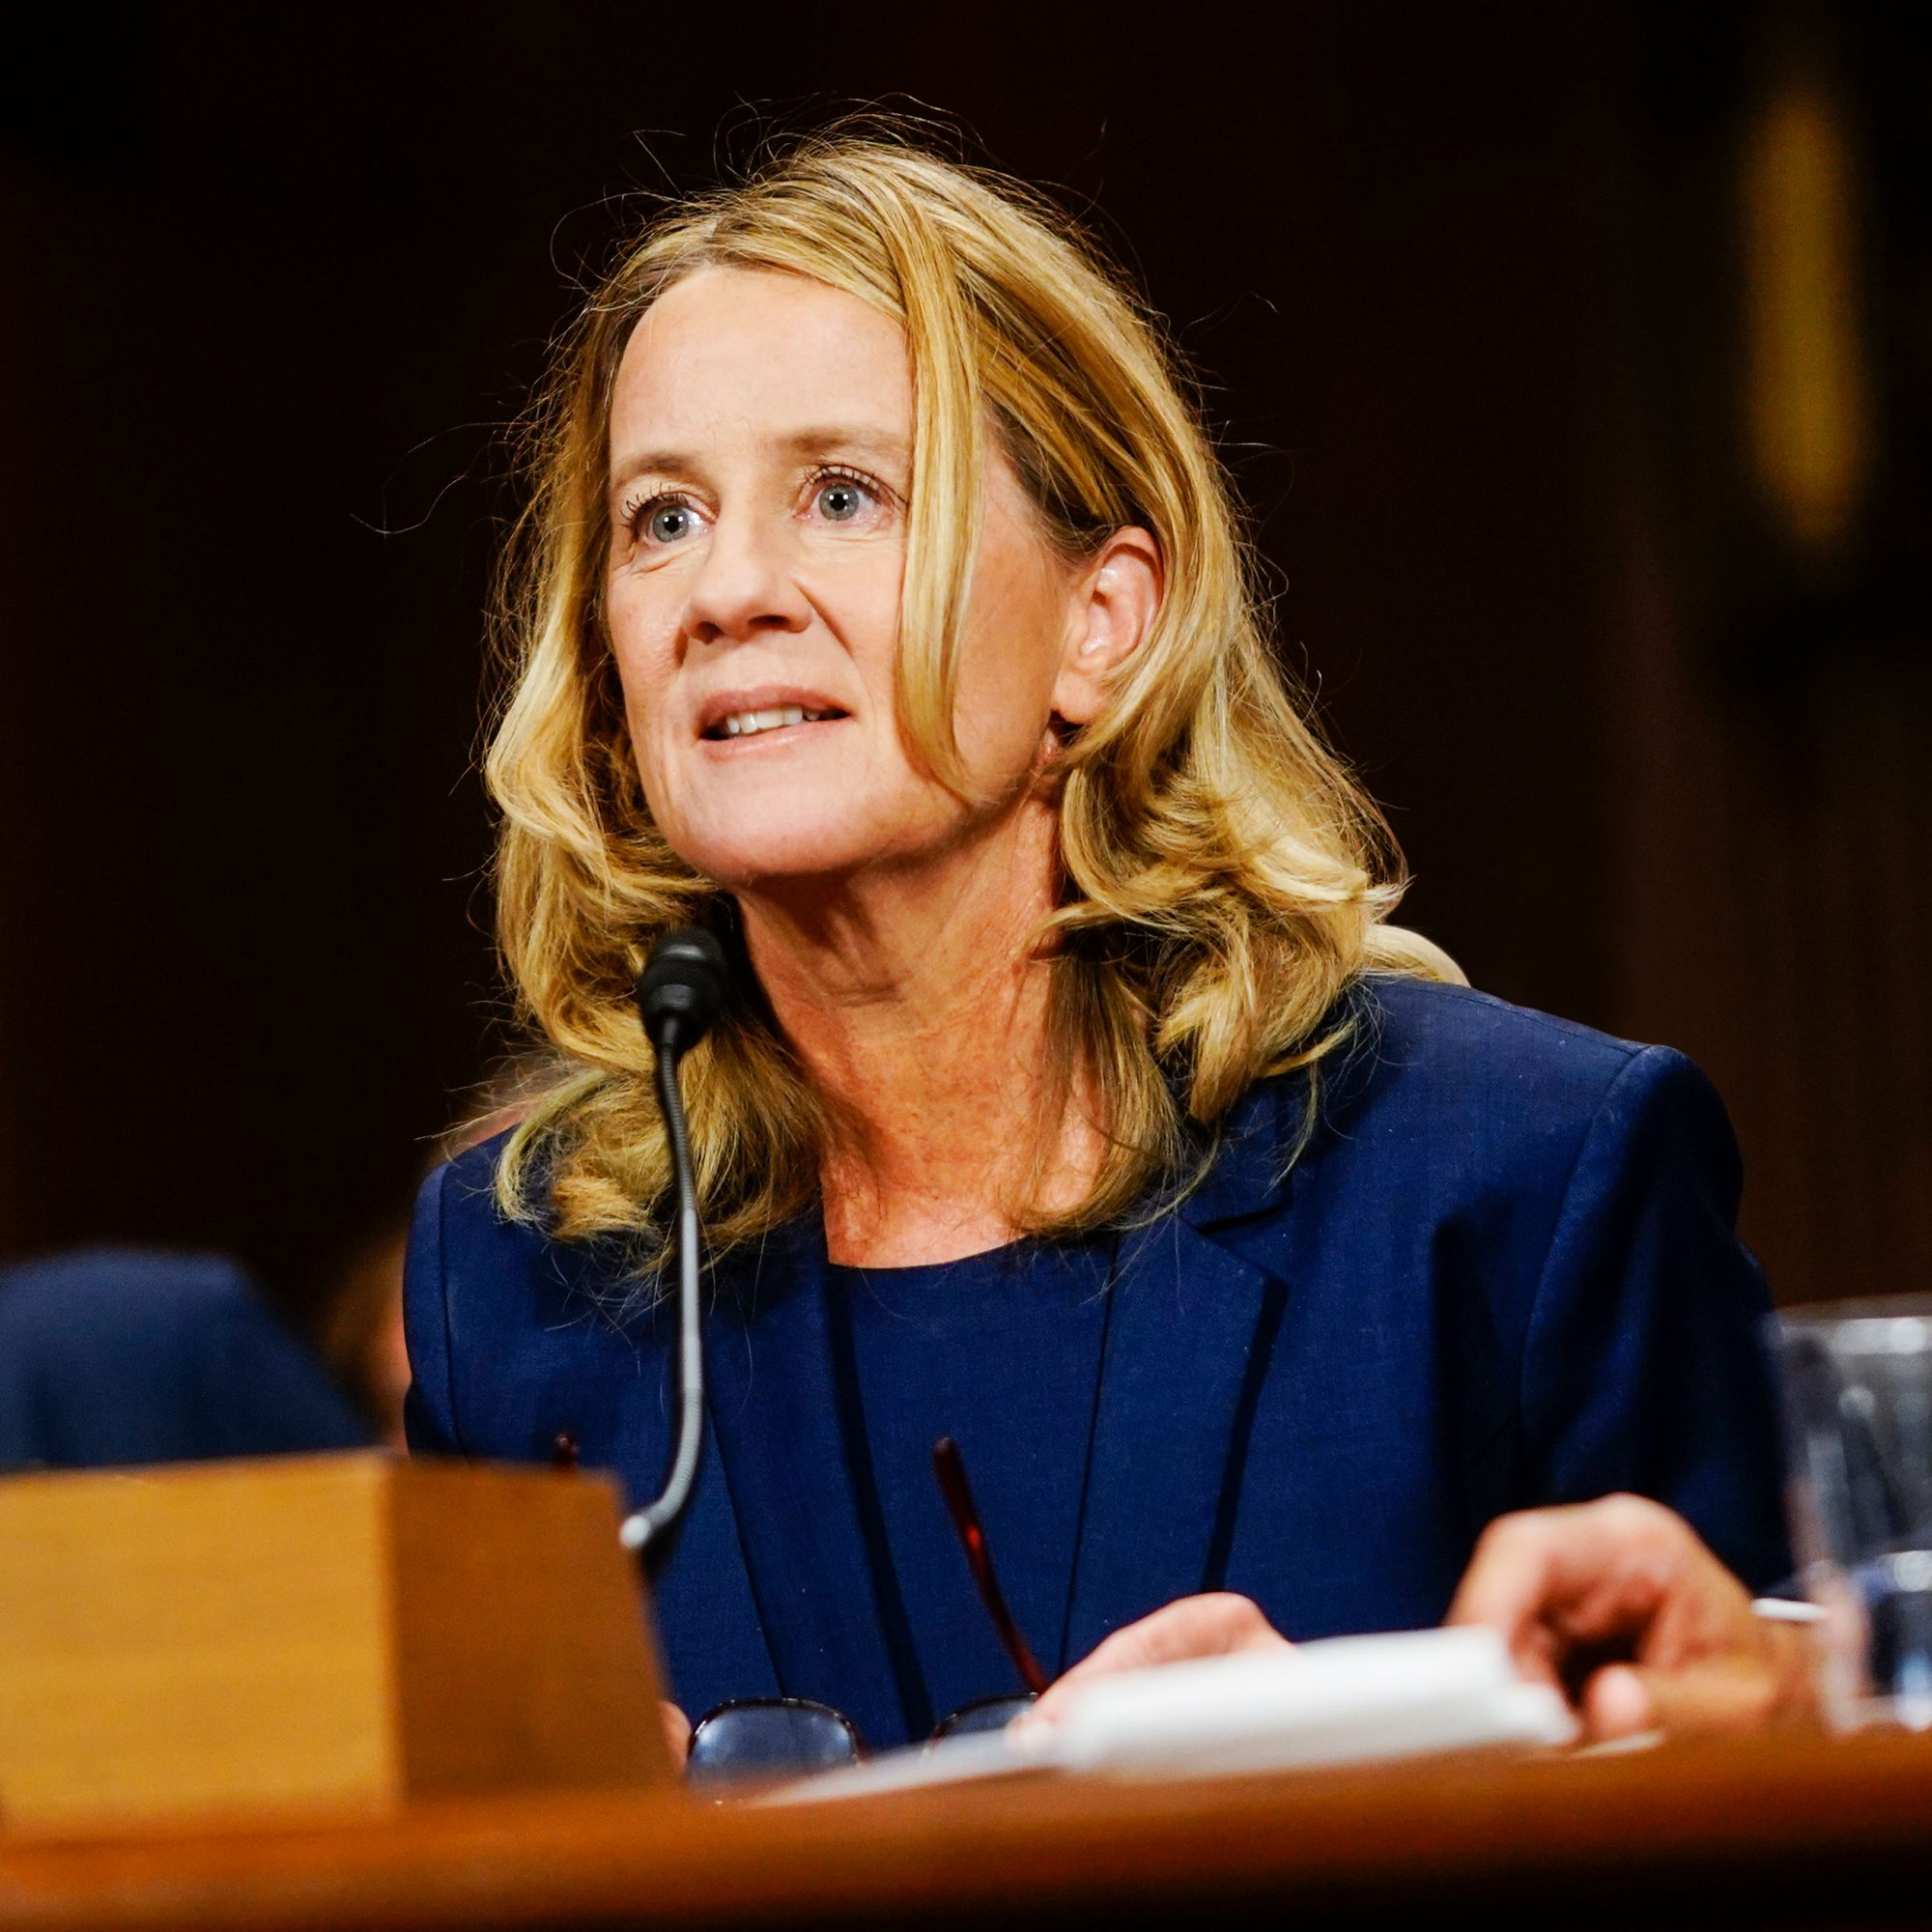 BADASS WOMEN OF THE YEAR: CHRISTINE BLASEY FORD